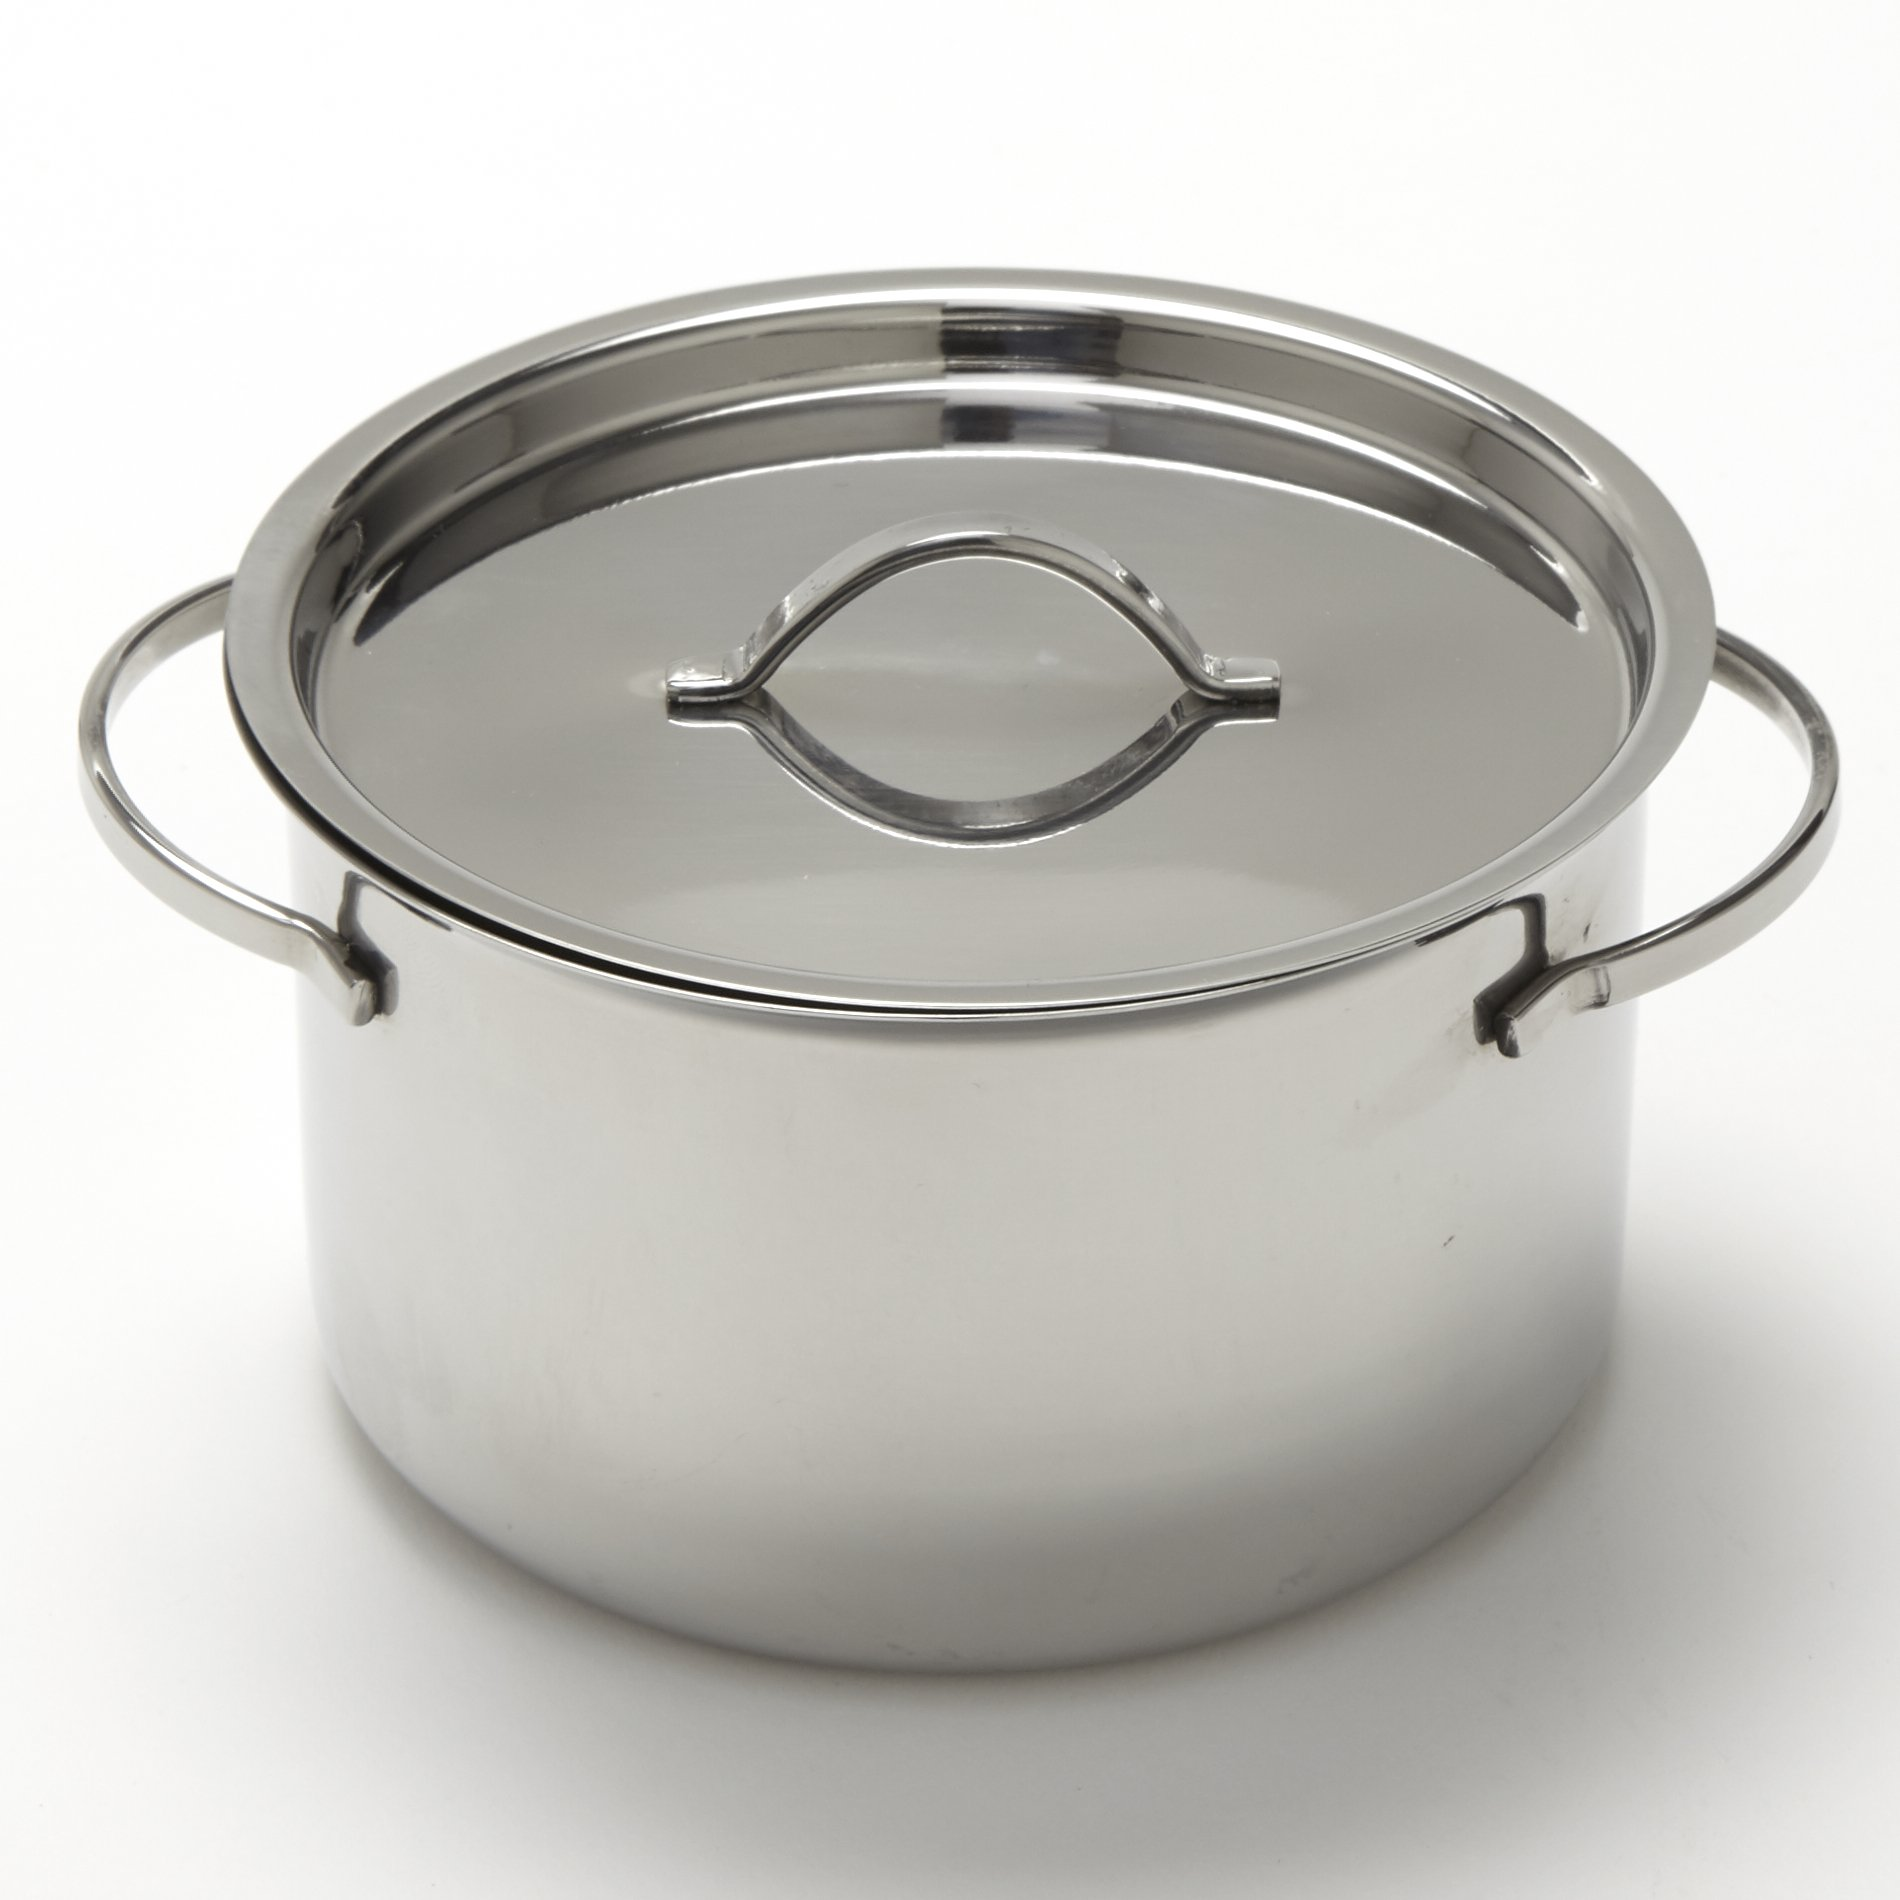 American Metalcraft MPL24 Stainless Steel Mini Pot with Lid, 24 oz.